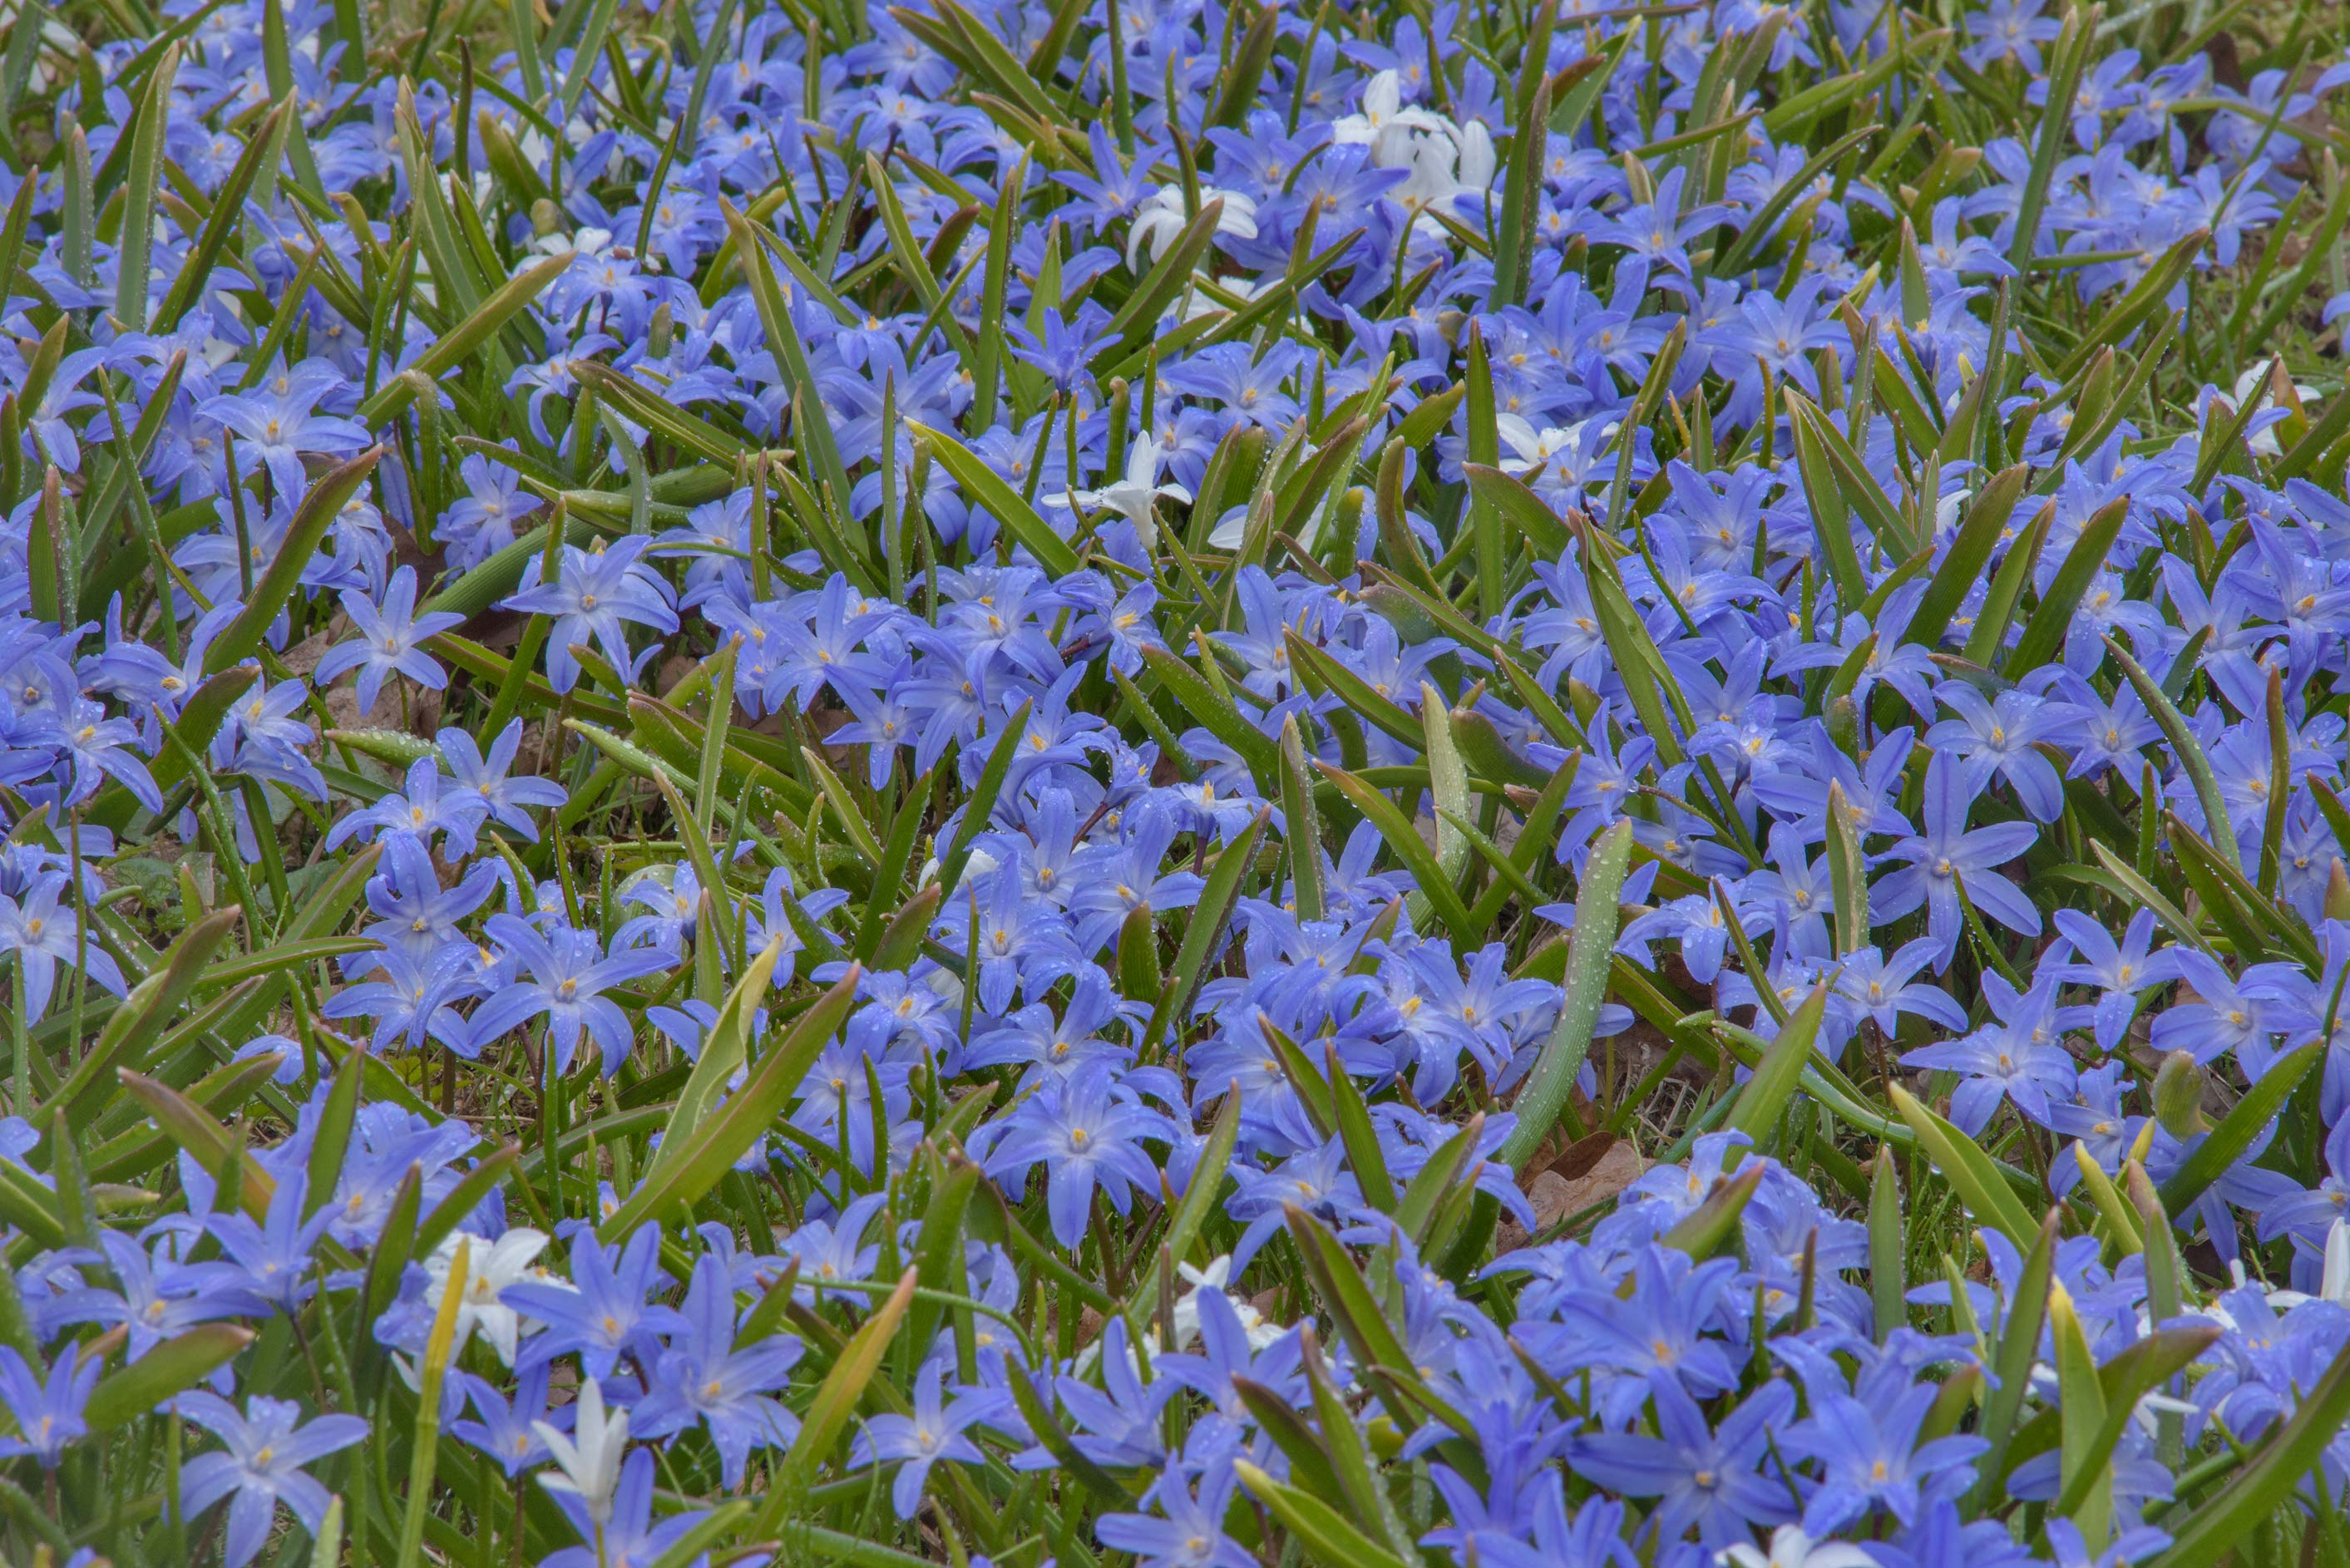 Masses of Lucile's glory-of-the-snow (Chionodoxa...Institute. St.Petersburg, Russia